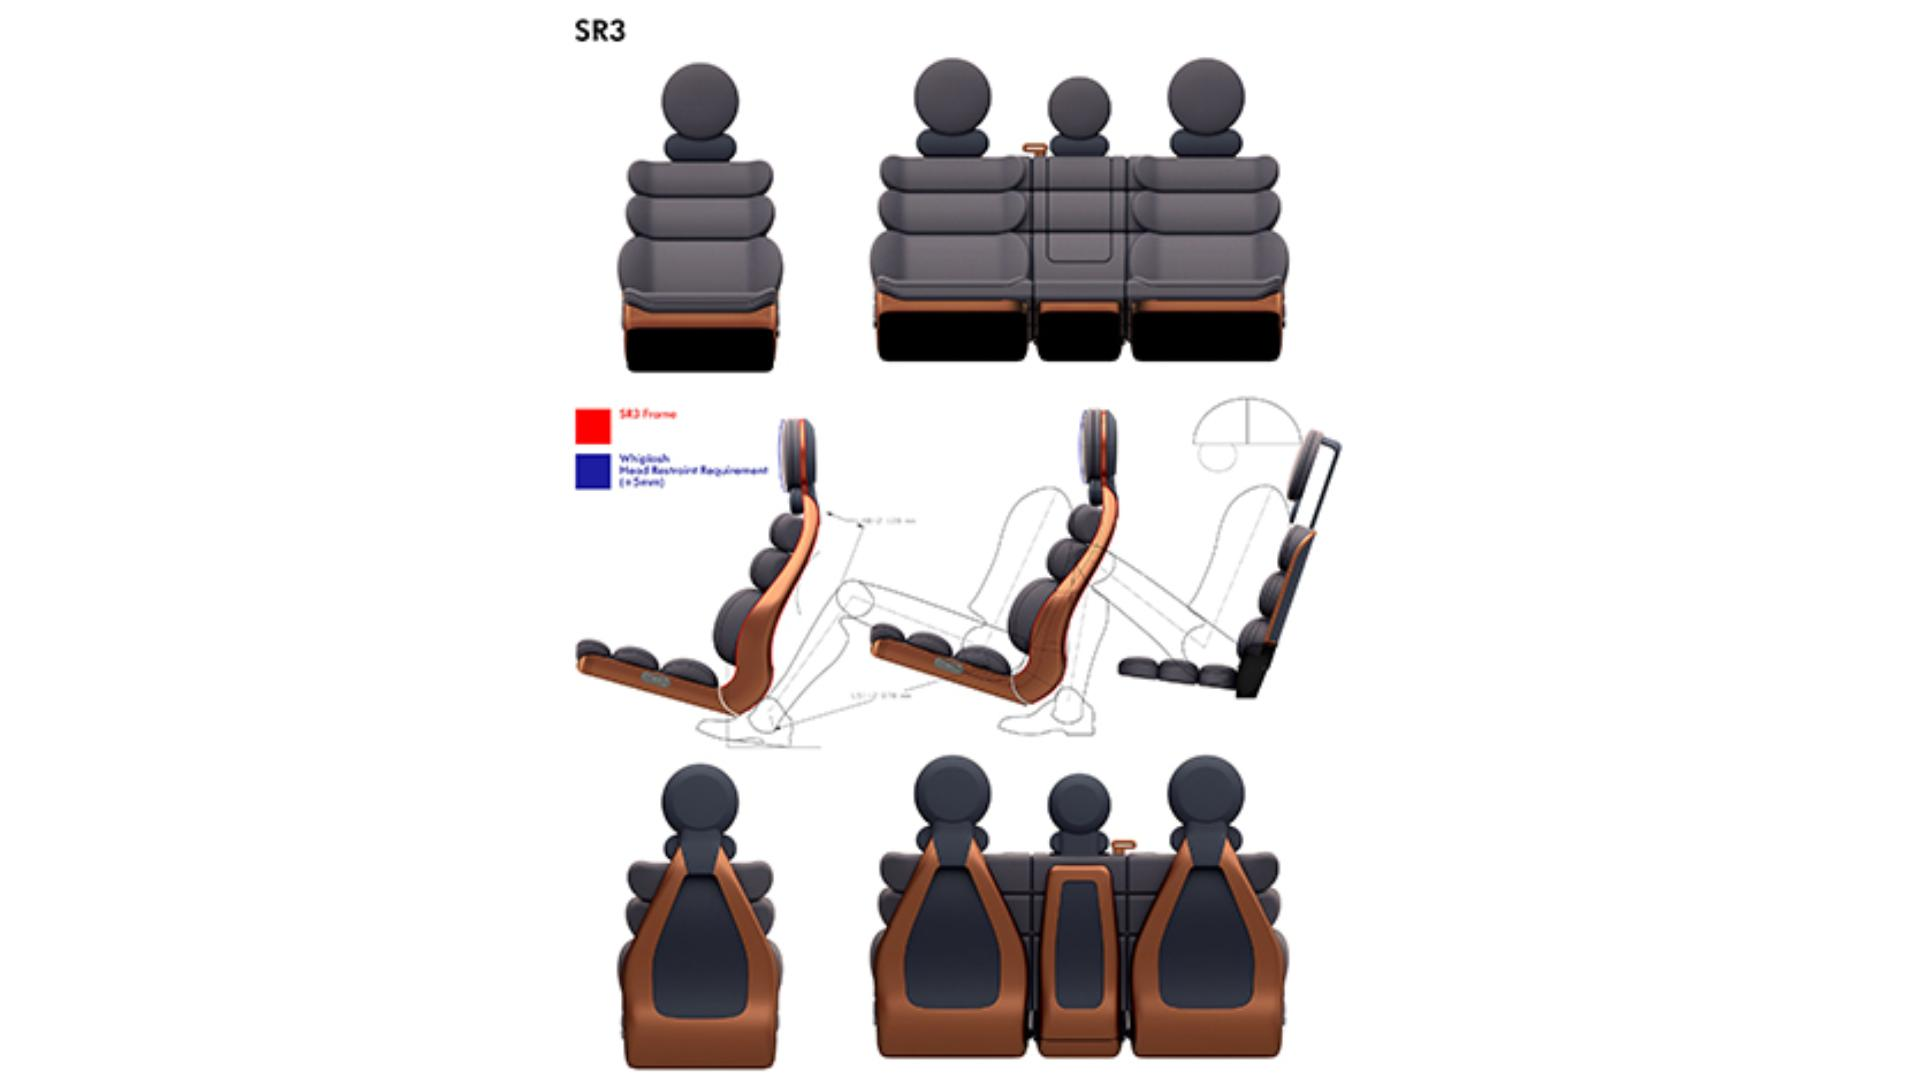 Images of various seat designs for the car